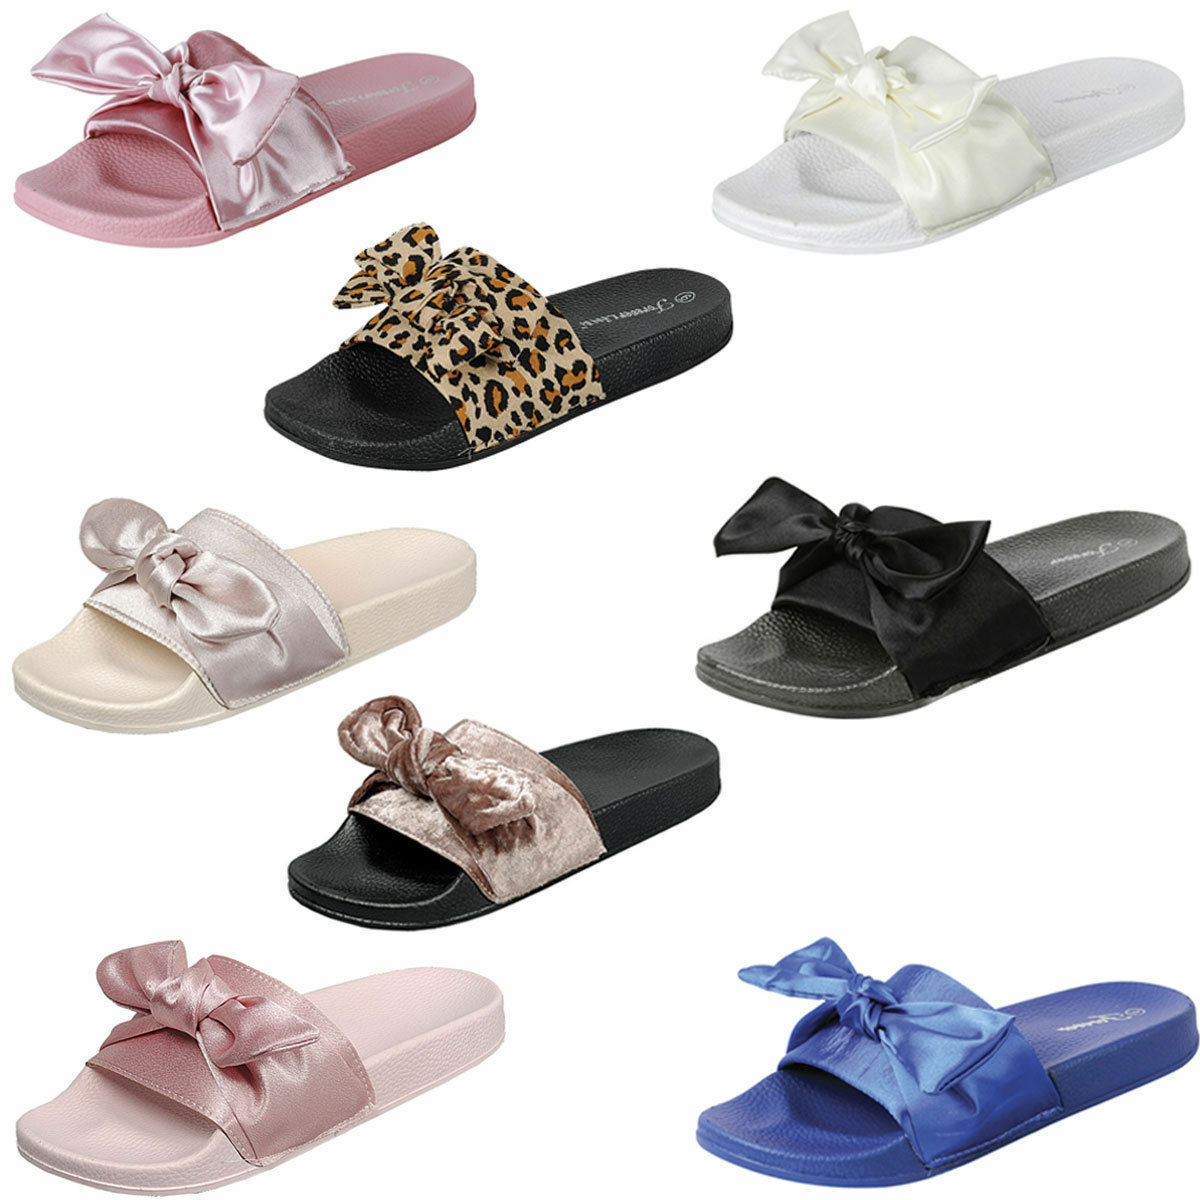 WOMEN'S  SATIN BOW RIHANNA SLIDE SANDALS RUBBER MOLDED FOOTBED SLIPPERS SANDALS SLIDE SHOES 009022